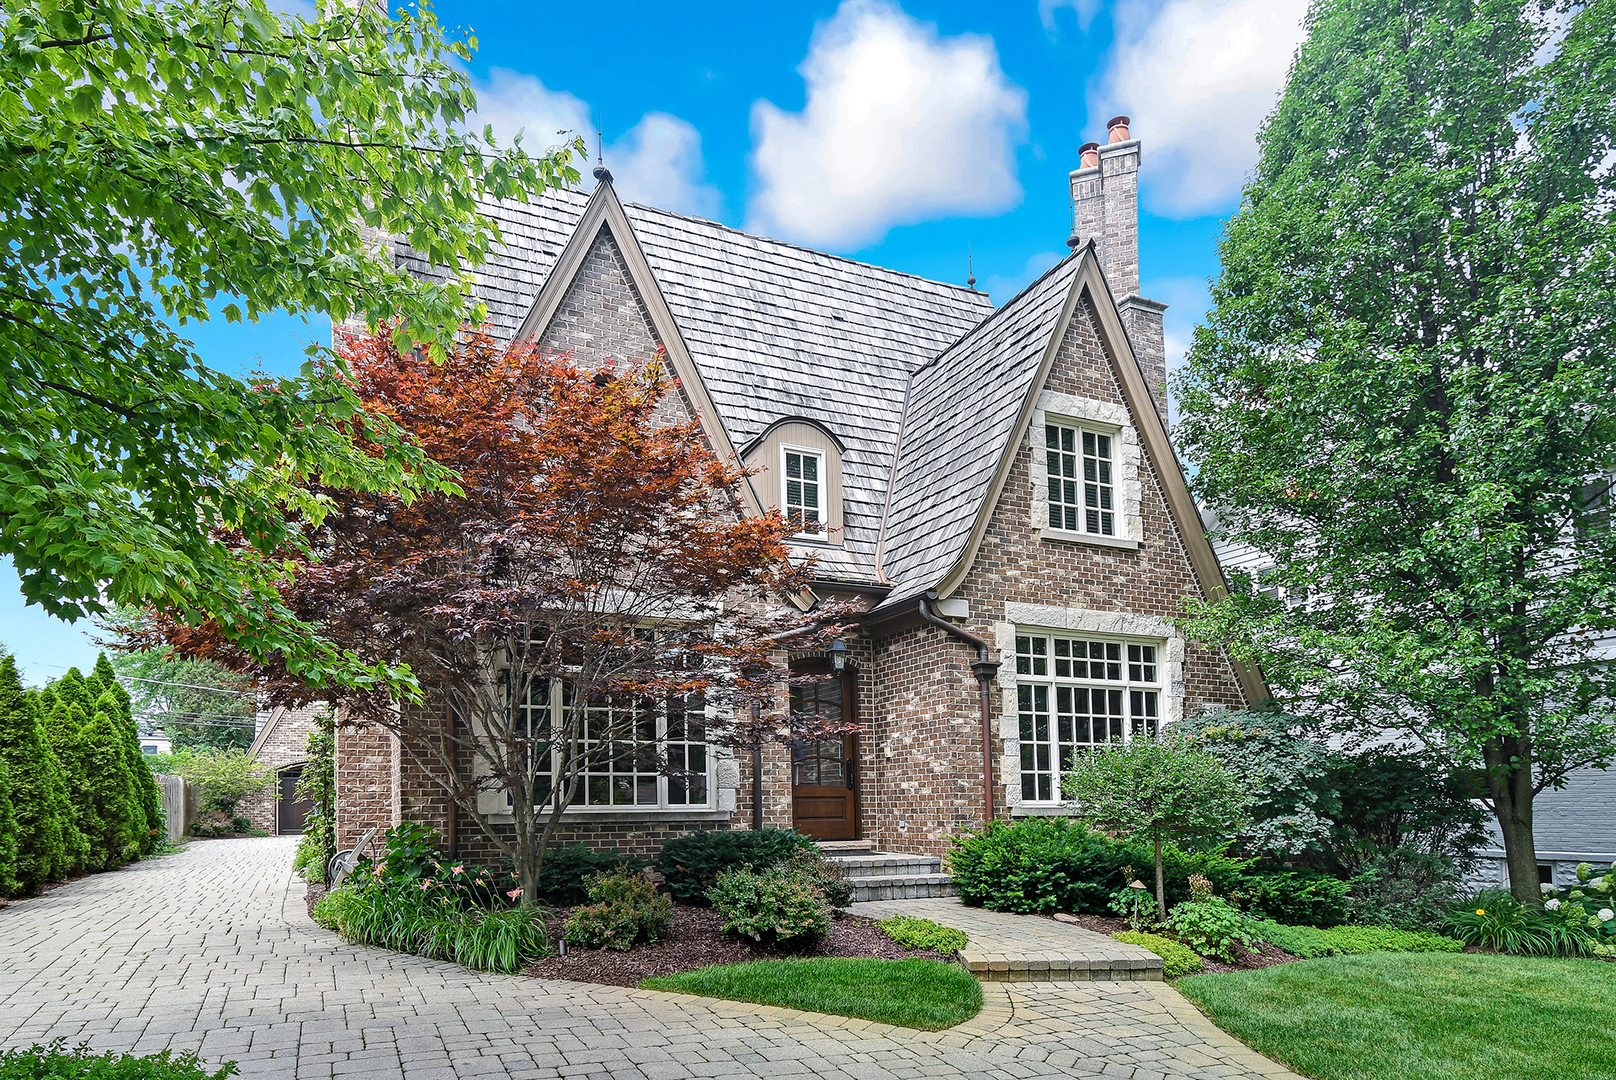 450 South Clay, Hinsdale, Illinois, 60521